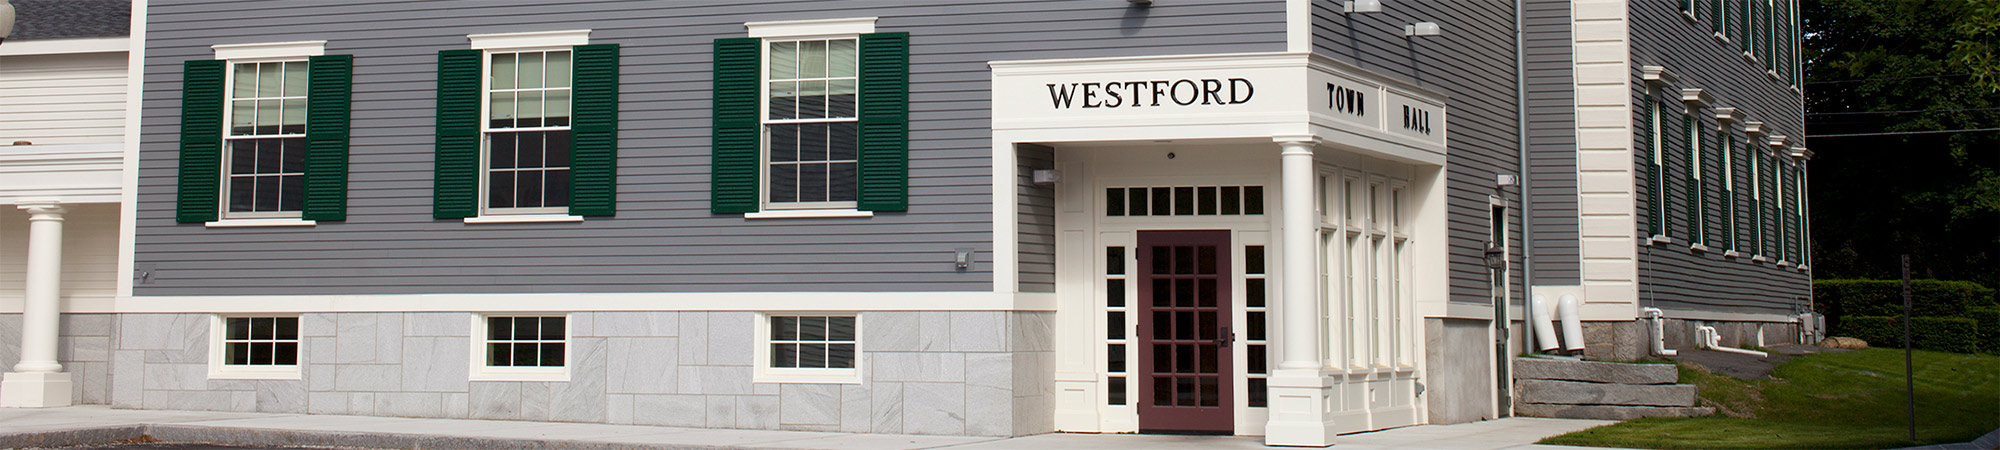 Westford Town Hall